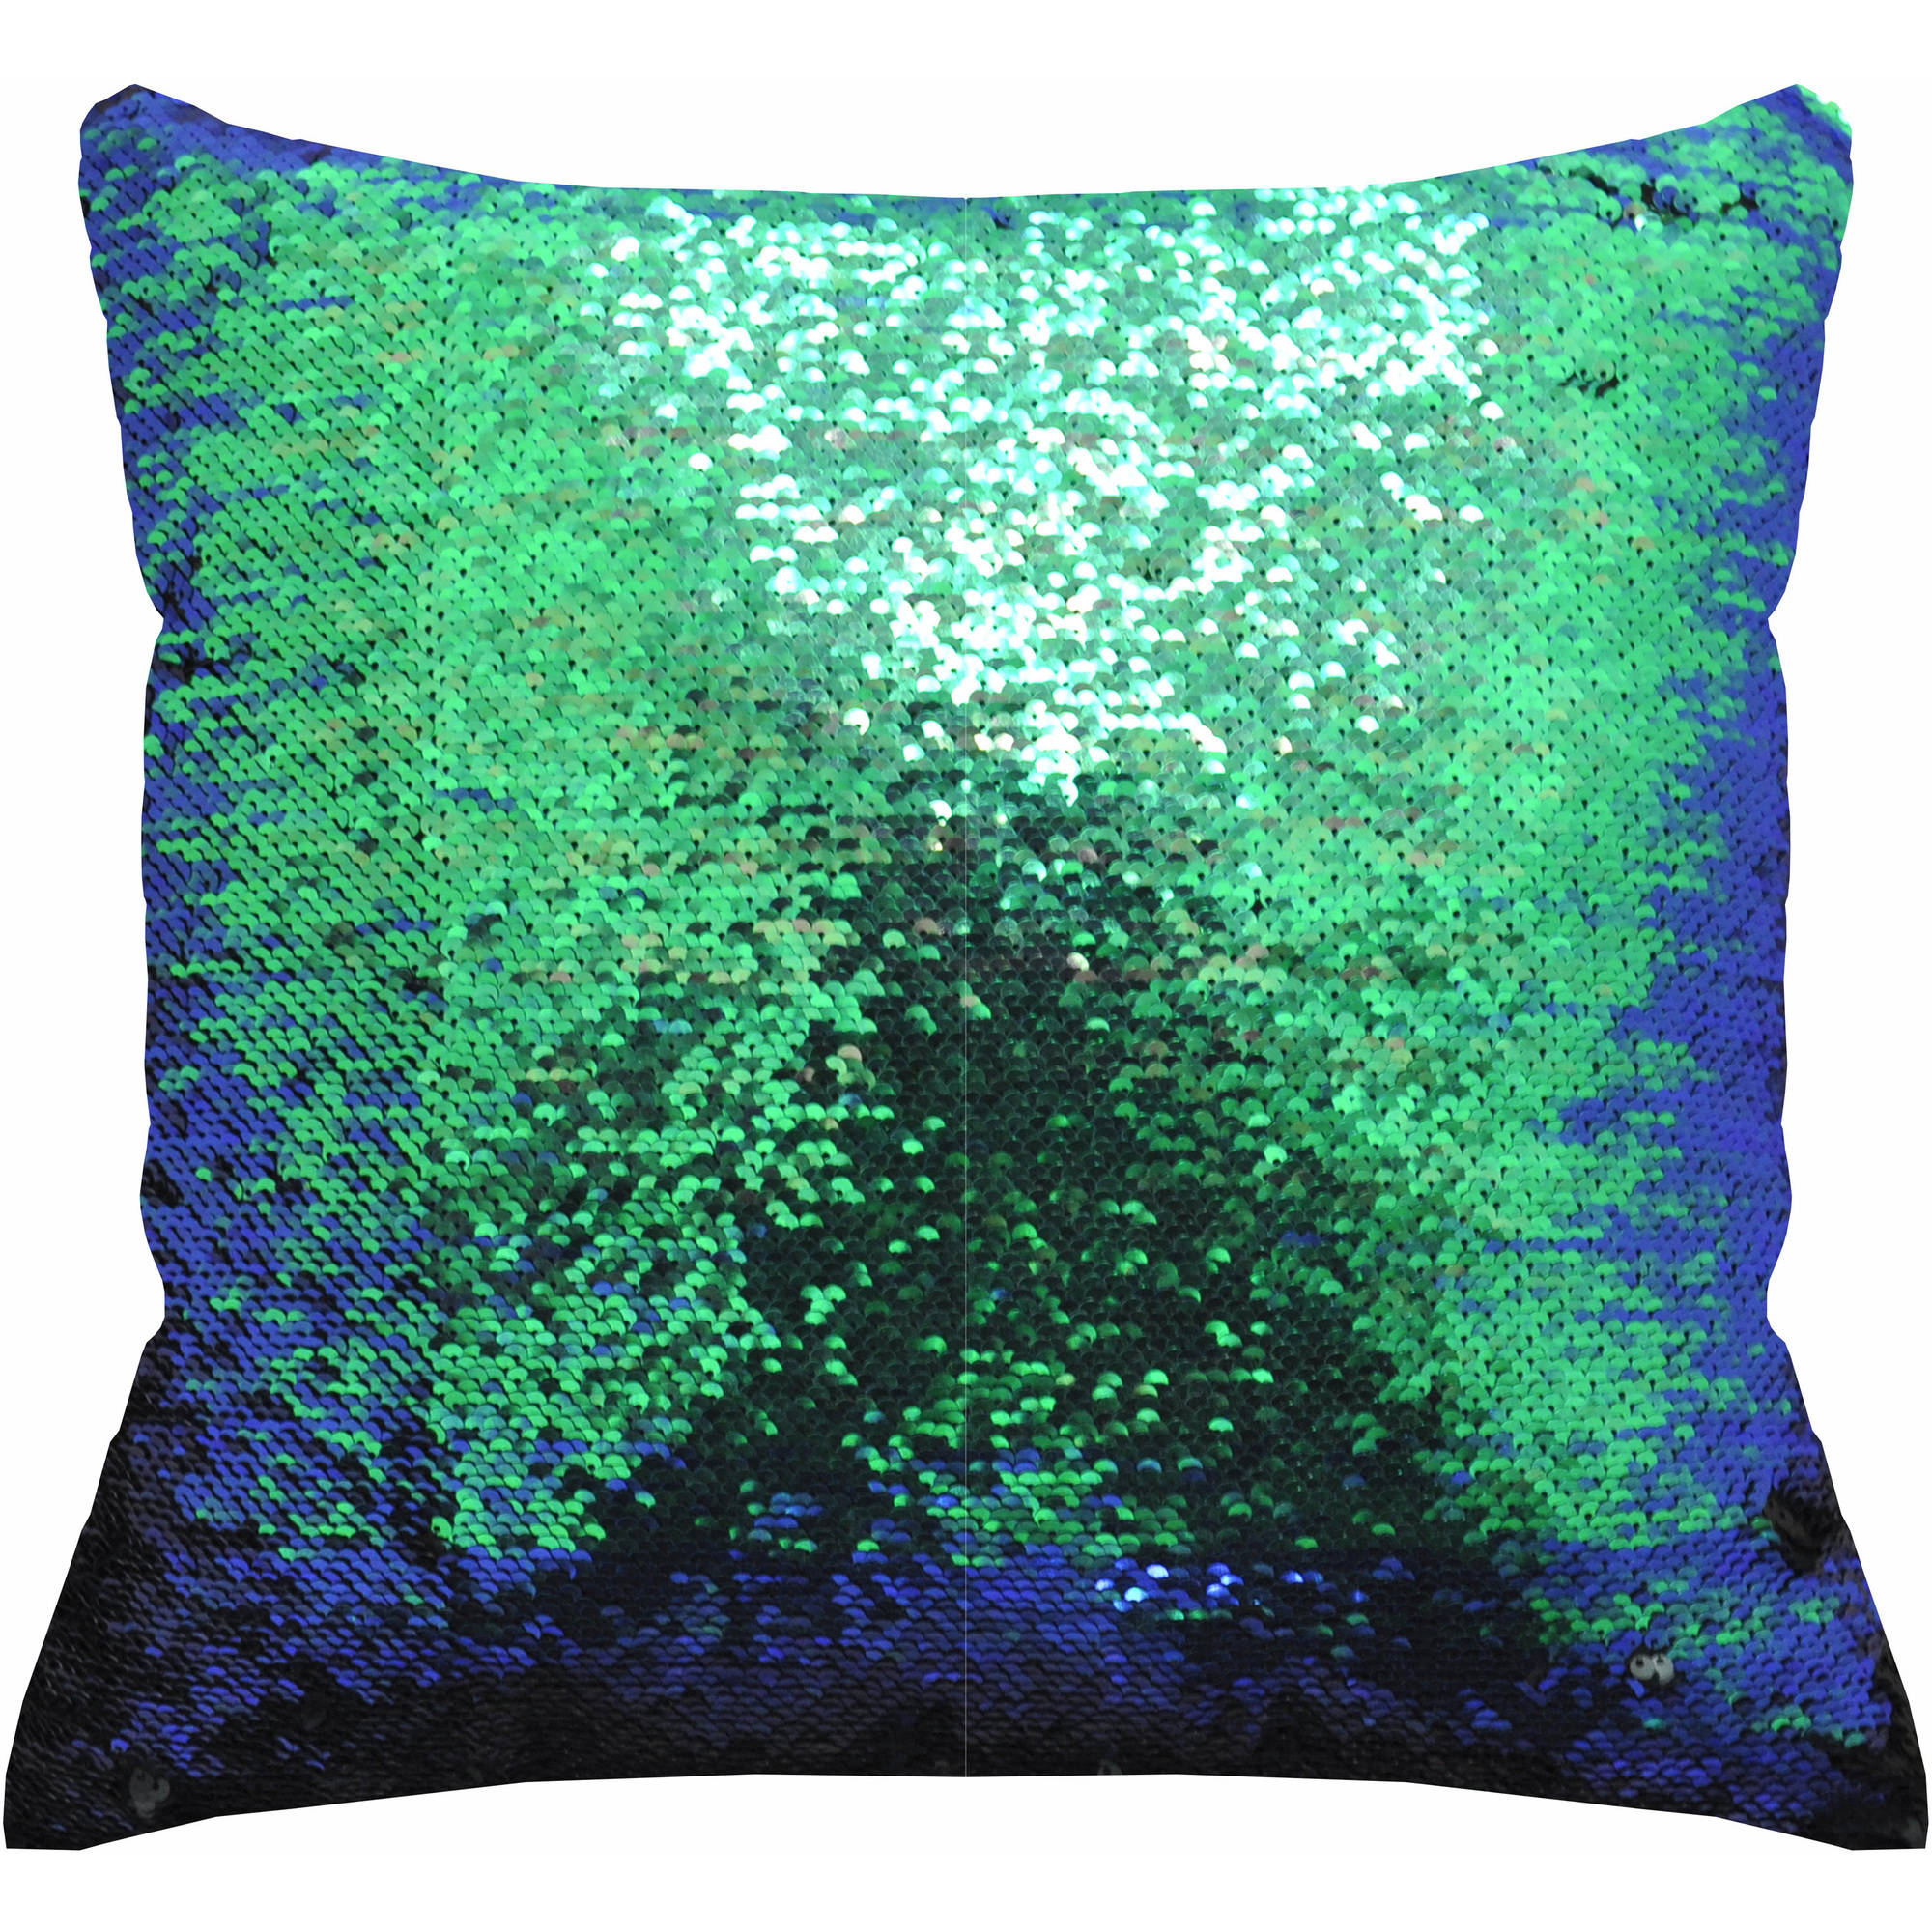 Reversible 17quot; x 17quot; Sequin Mermaid Decorative Pillow  Walmart